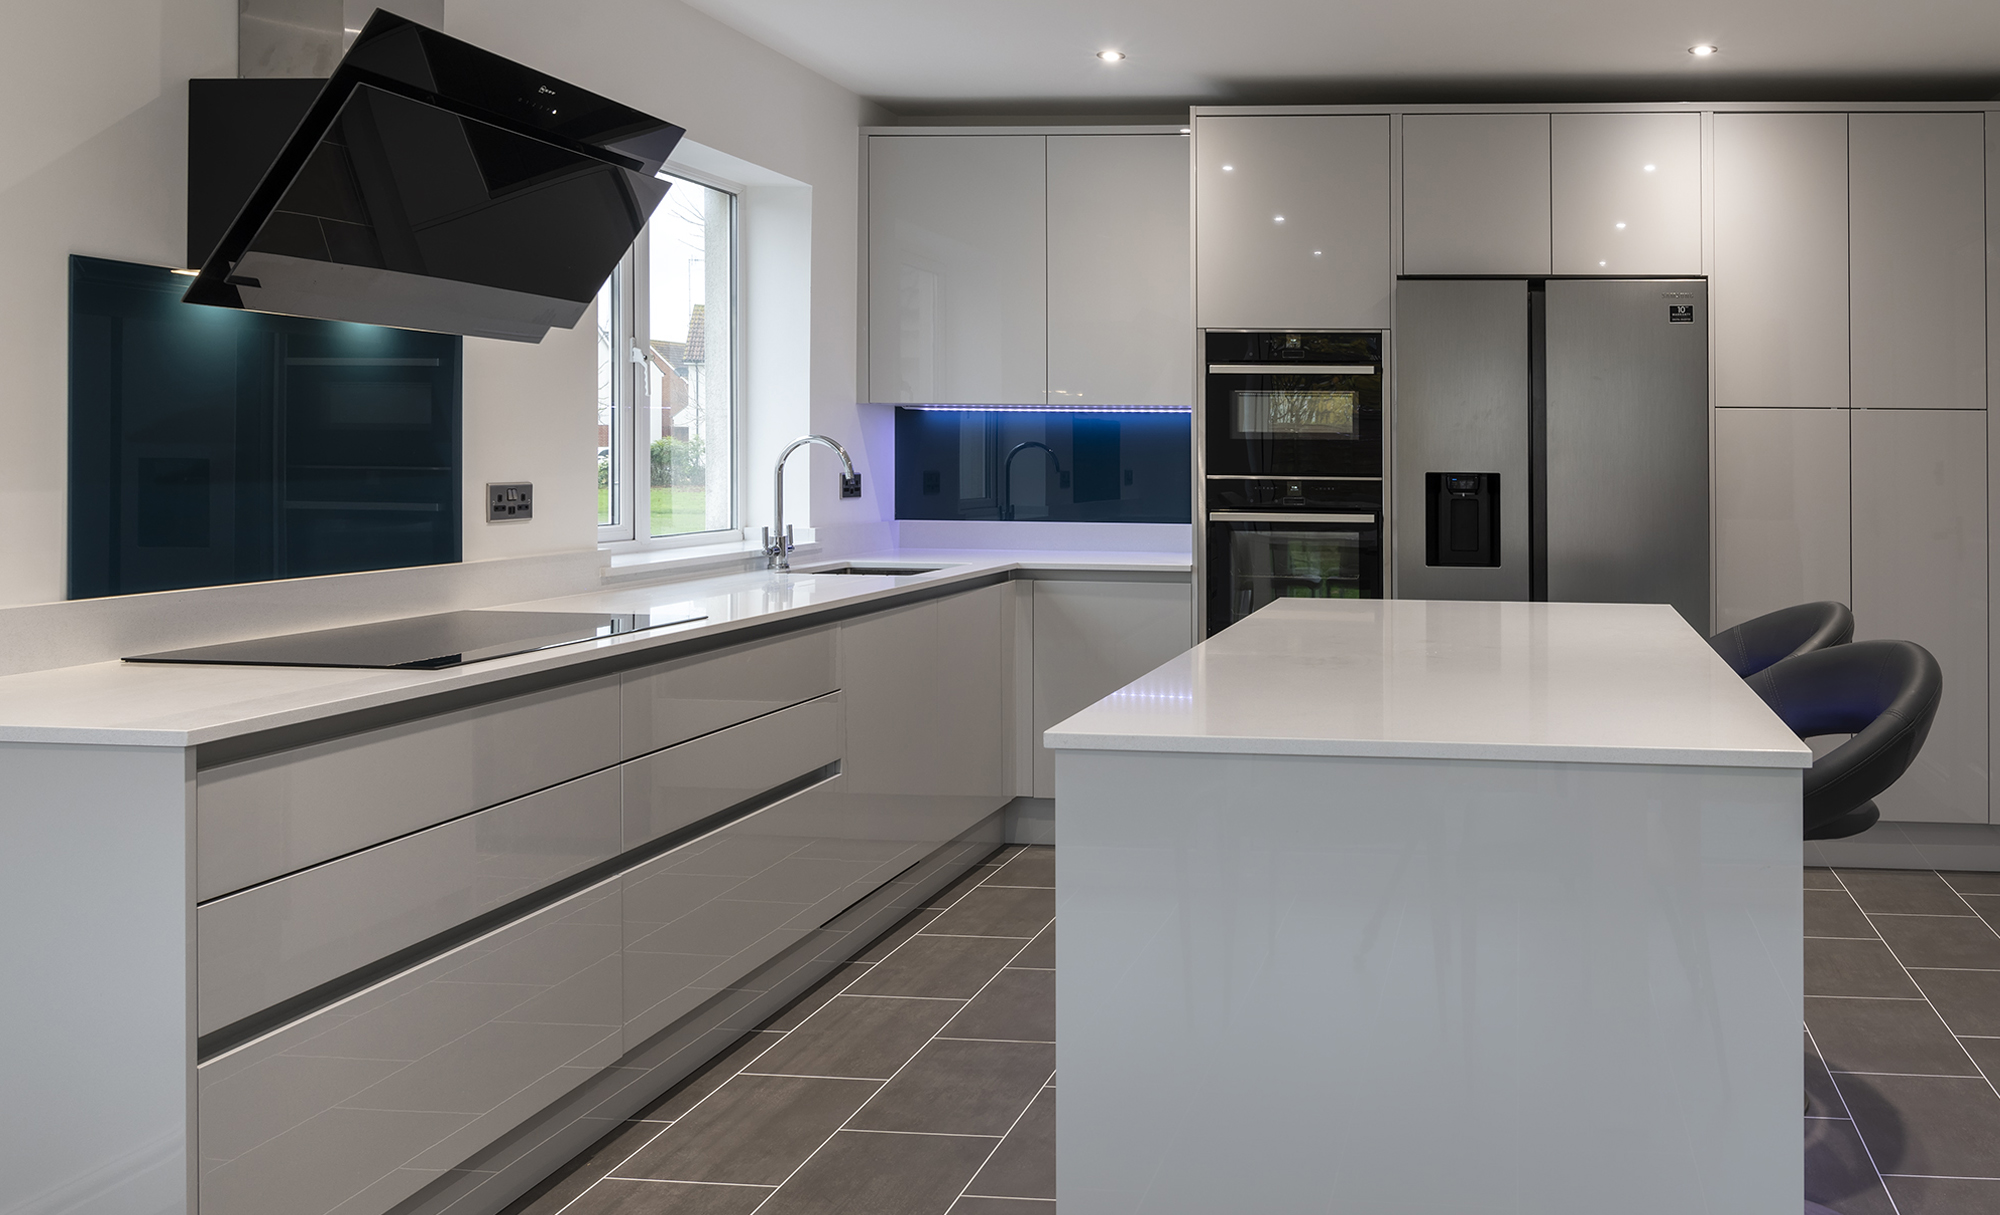 Portishead Zola Gloss Light Grey Kitchen for a home in North Somerset